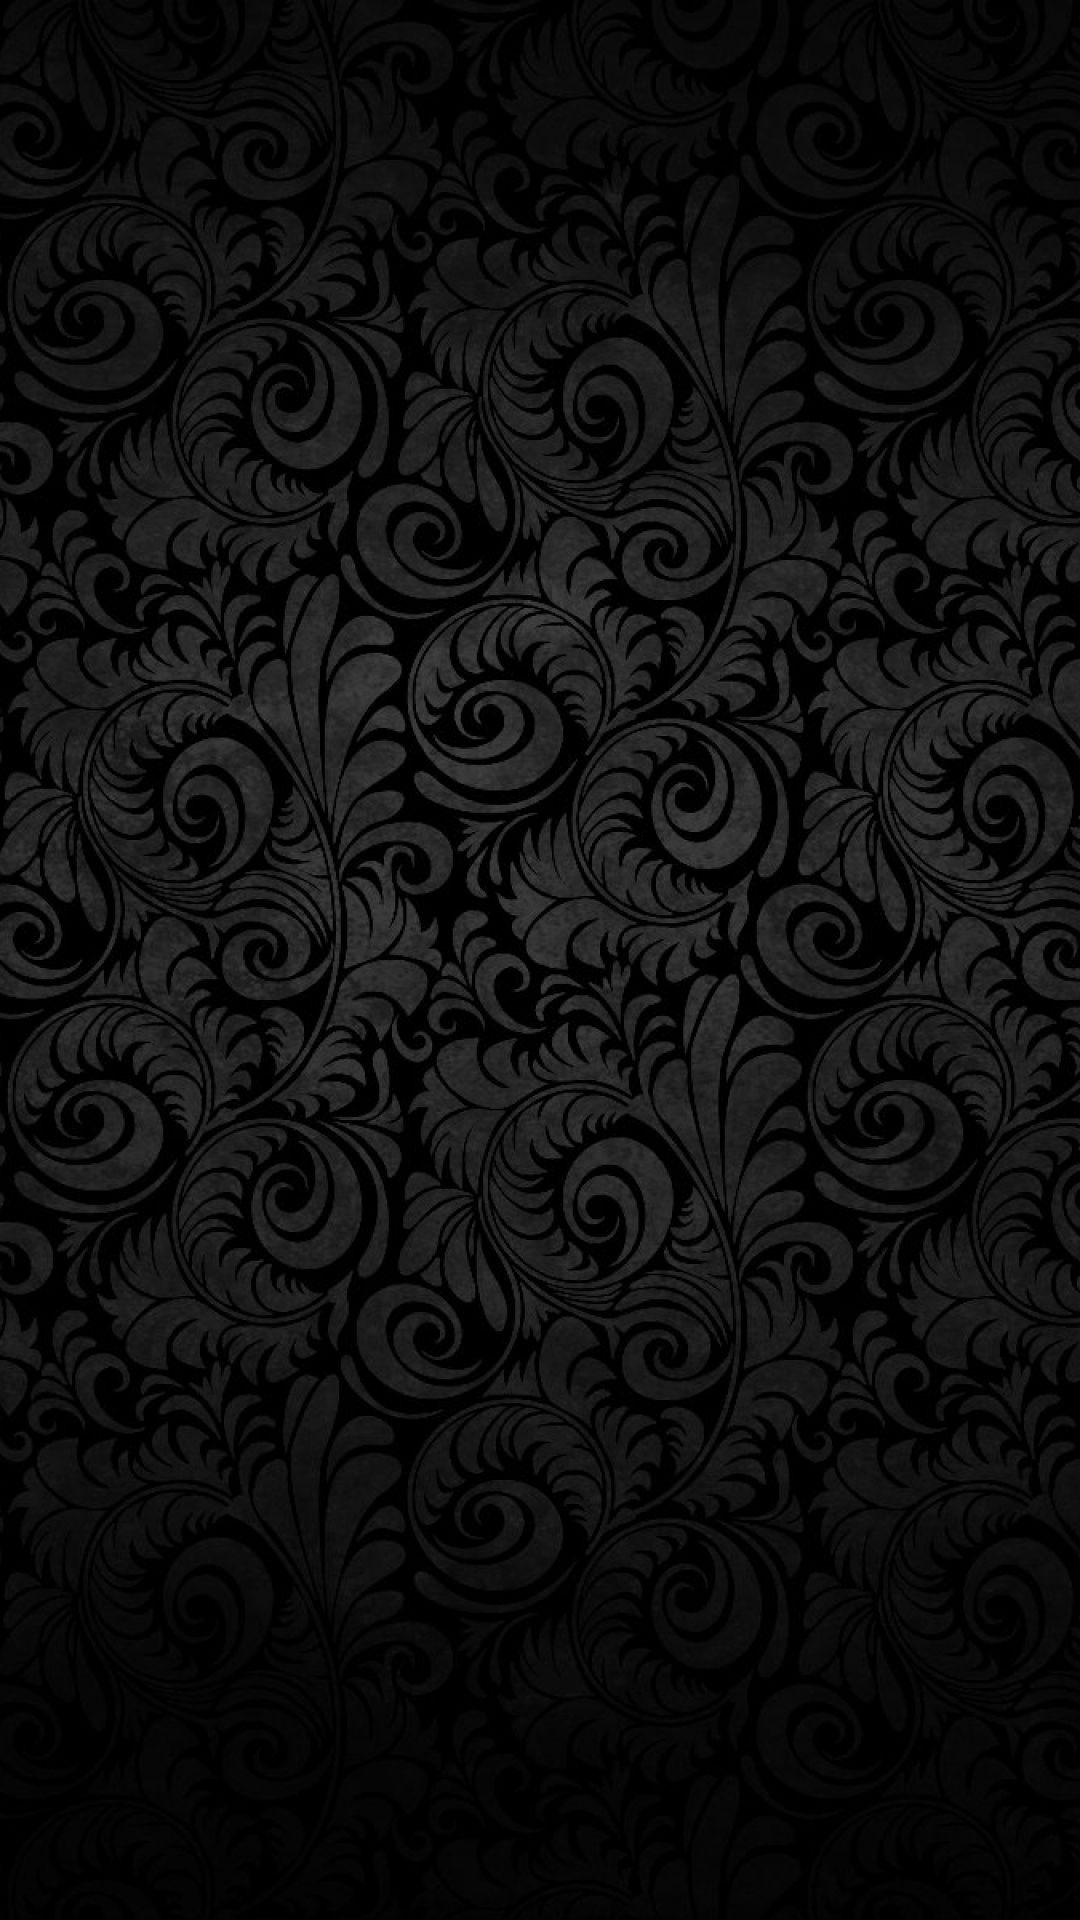 black-iphone-hd-wallpaper-wpc9203072